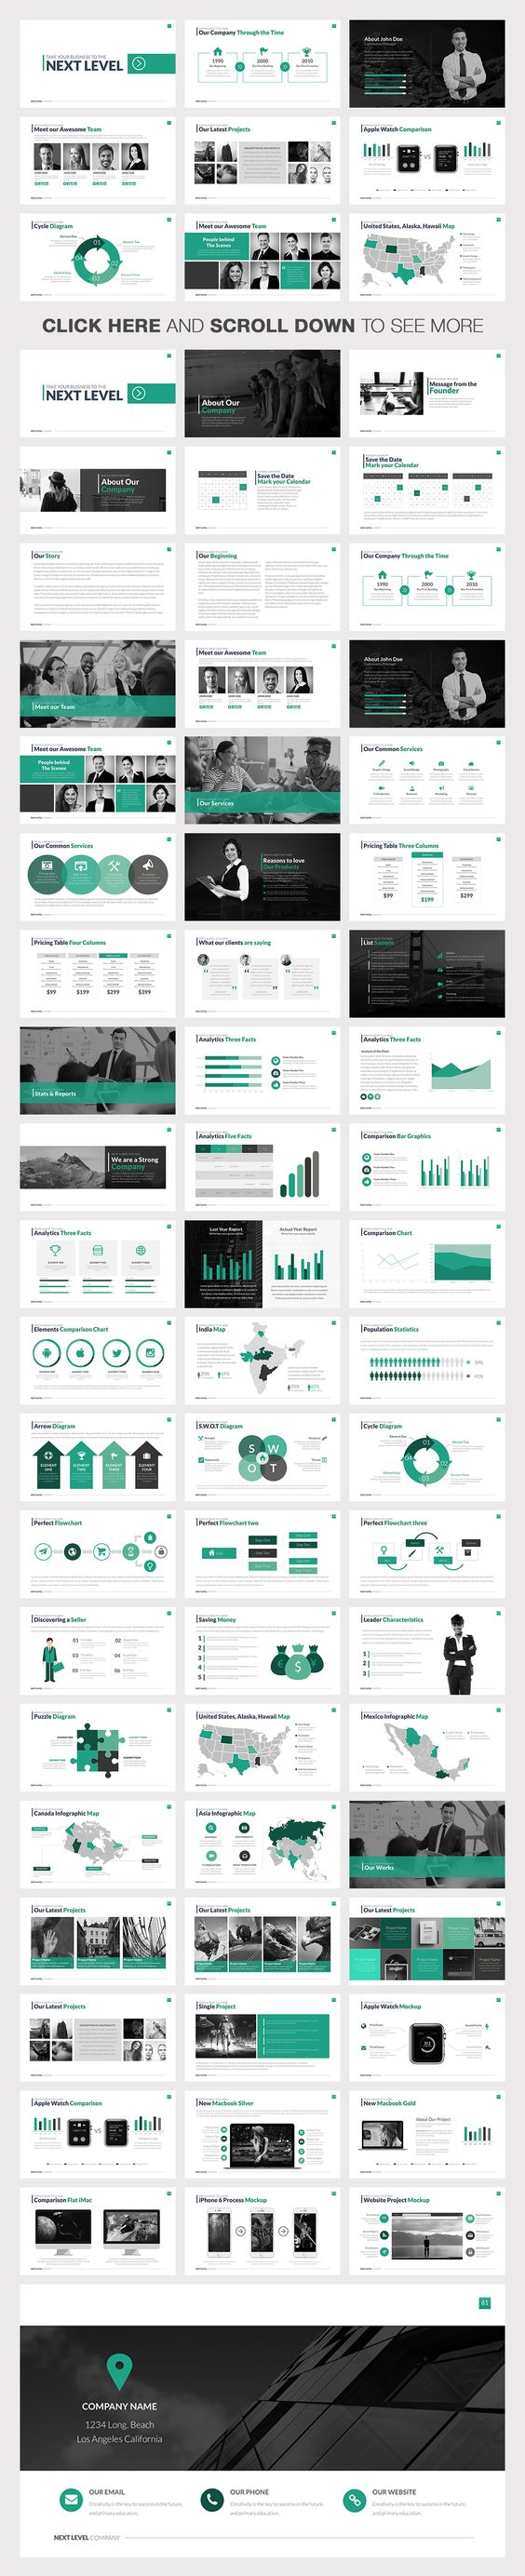 Next Level Powerpoint Template By Slidedizer On Creative Market